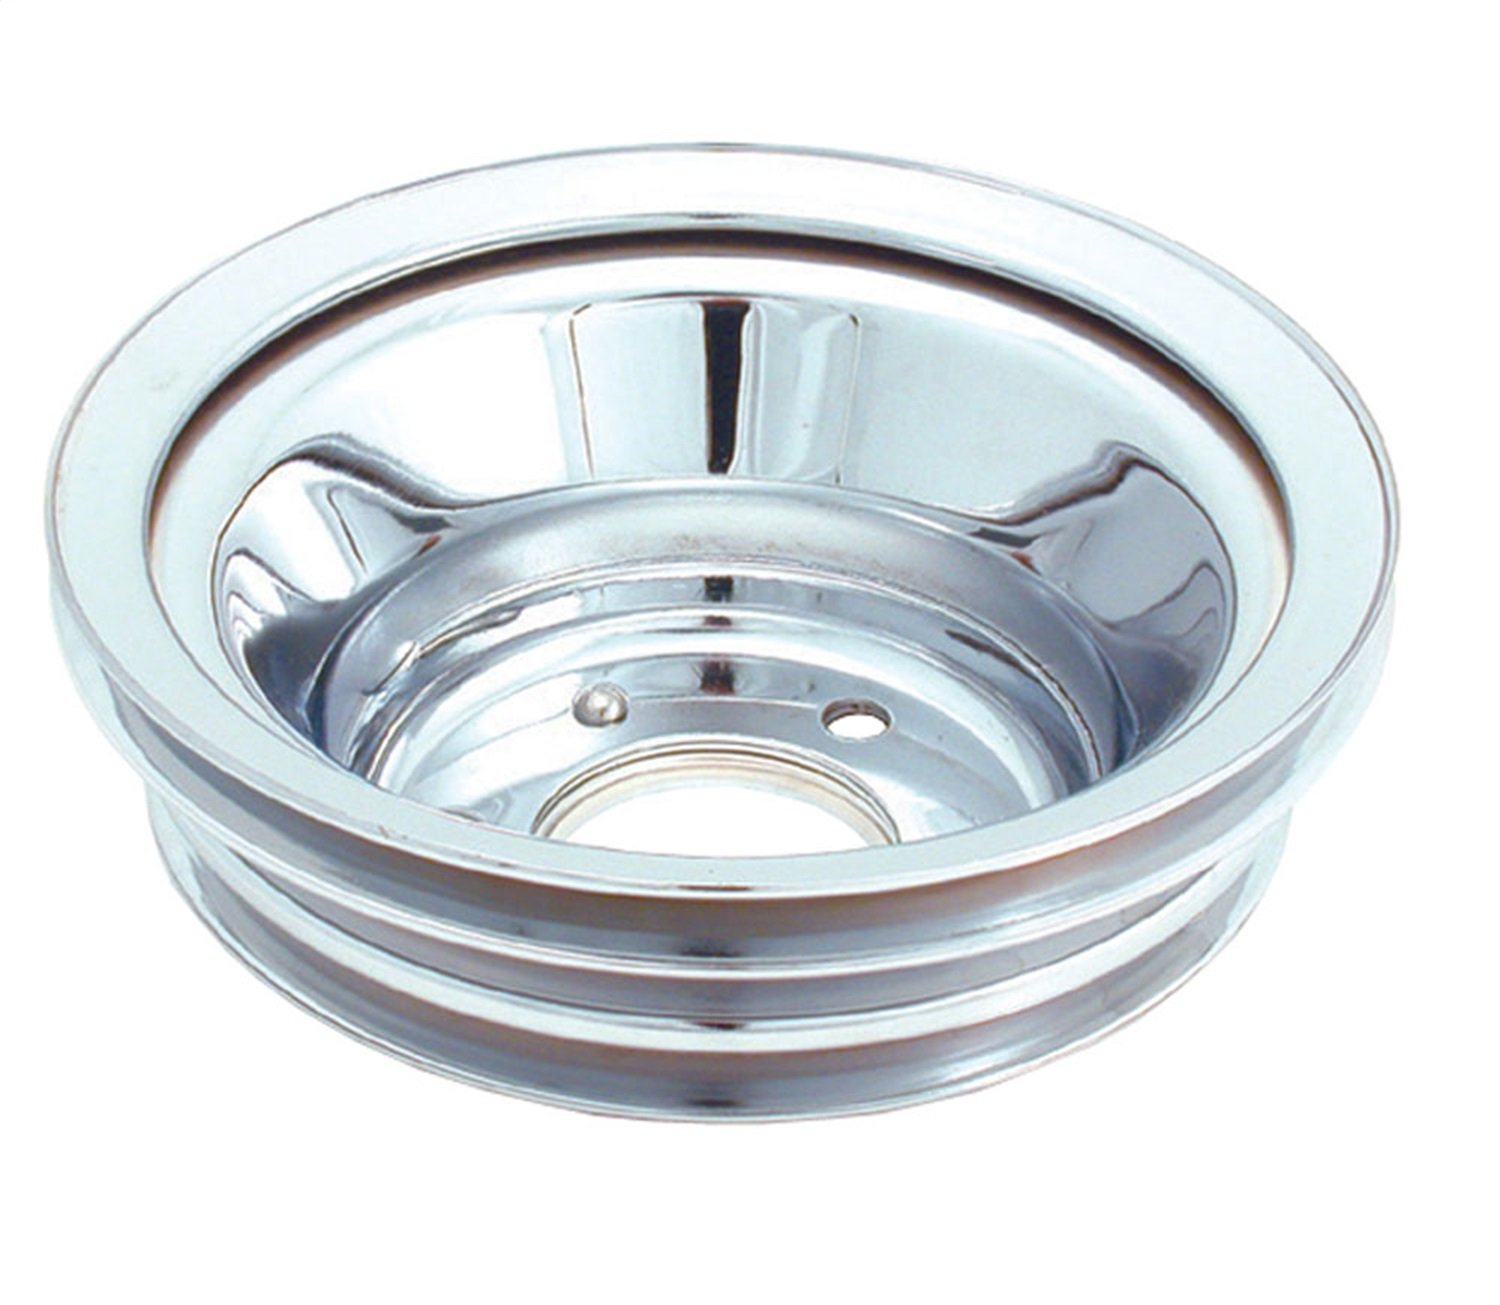 Spectre Performance 4508 Chrome Triple Belt Crankshaft Pulley for Big Block Chevy with Long Water Pump SPE-4508